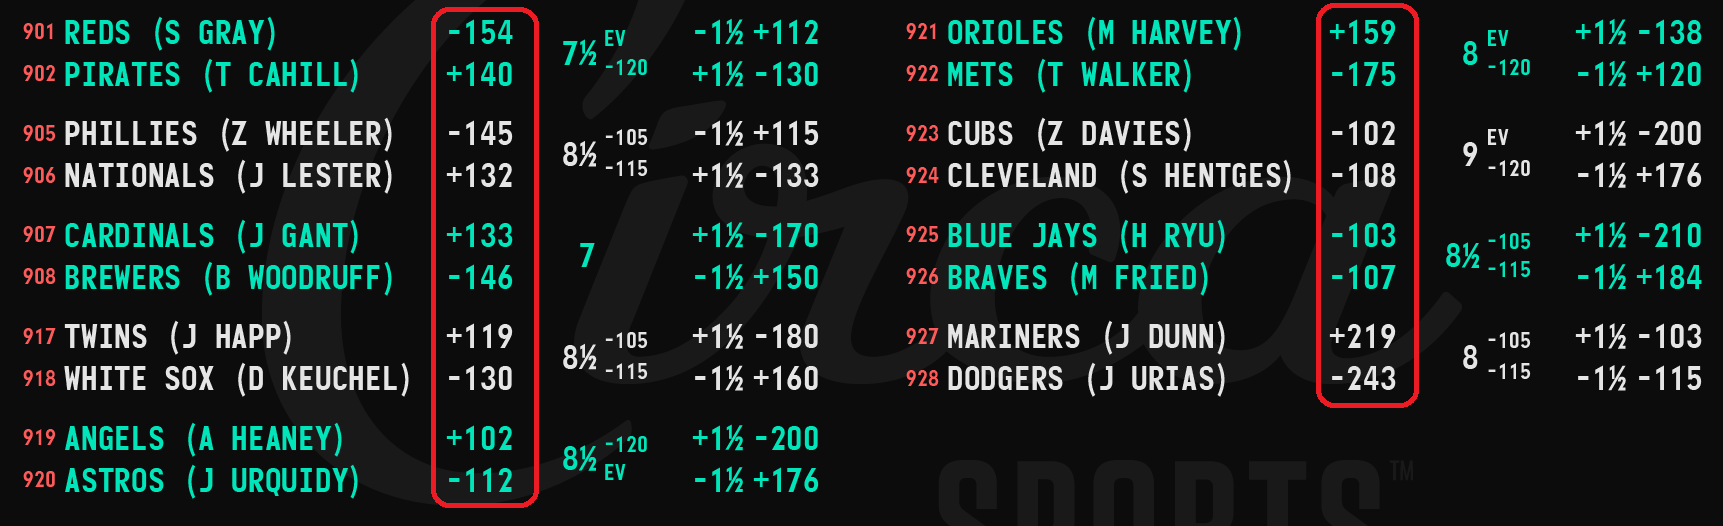 Baseball betting odds board from Circa Sports with the moneylines highlighted.